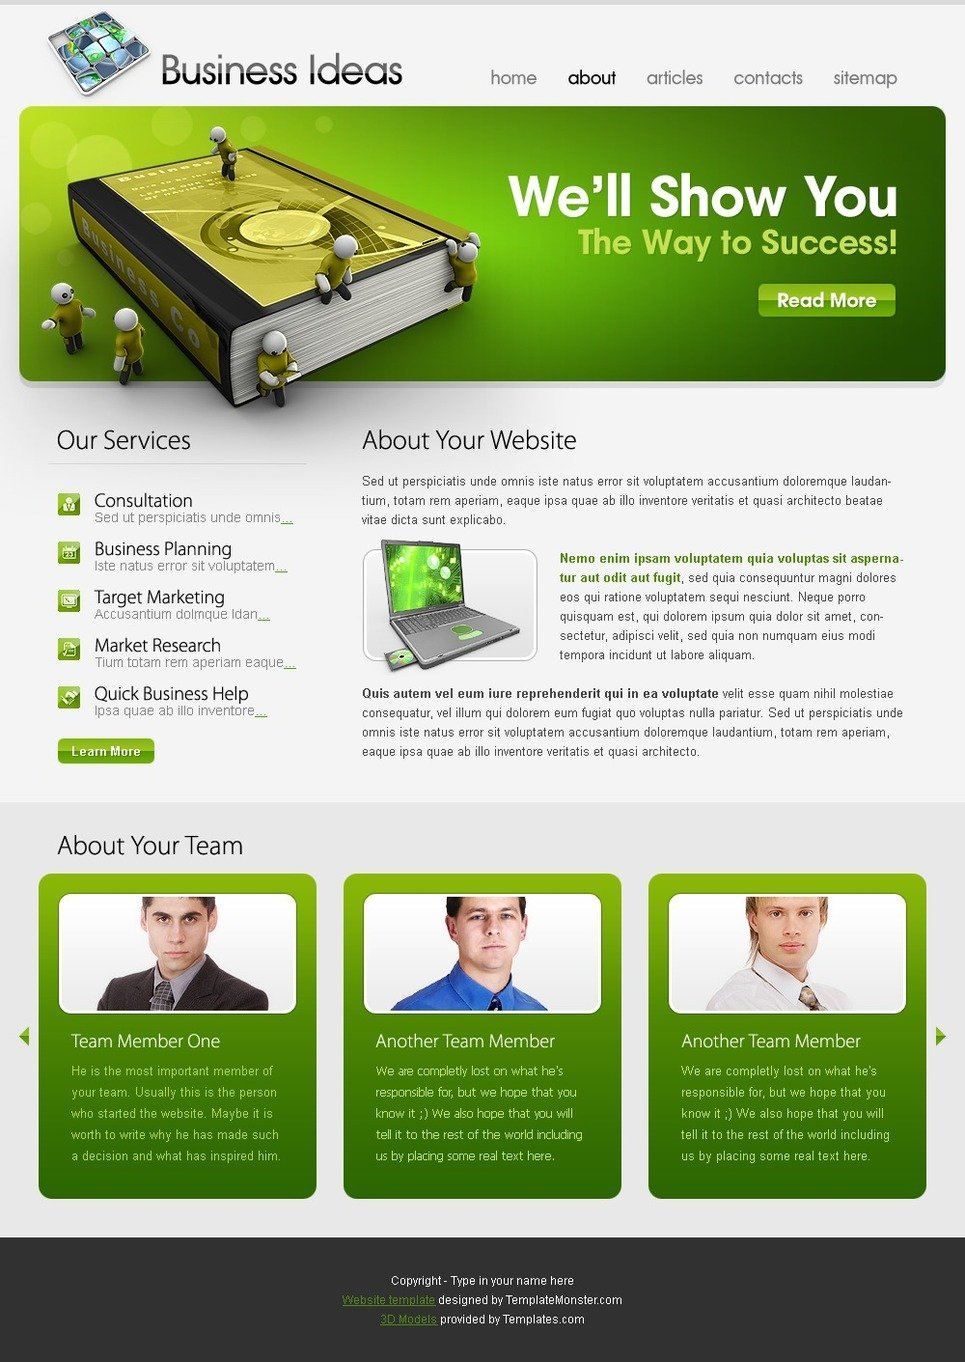 free template business ideas website template new screenshots big - Free Web Templates